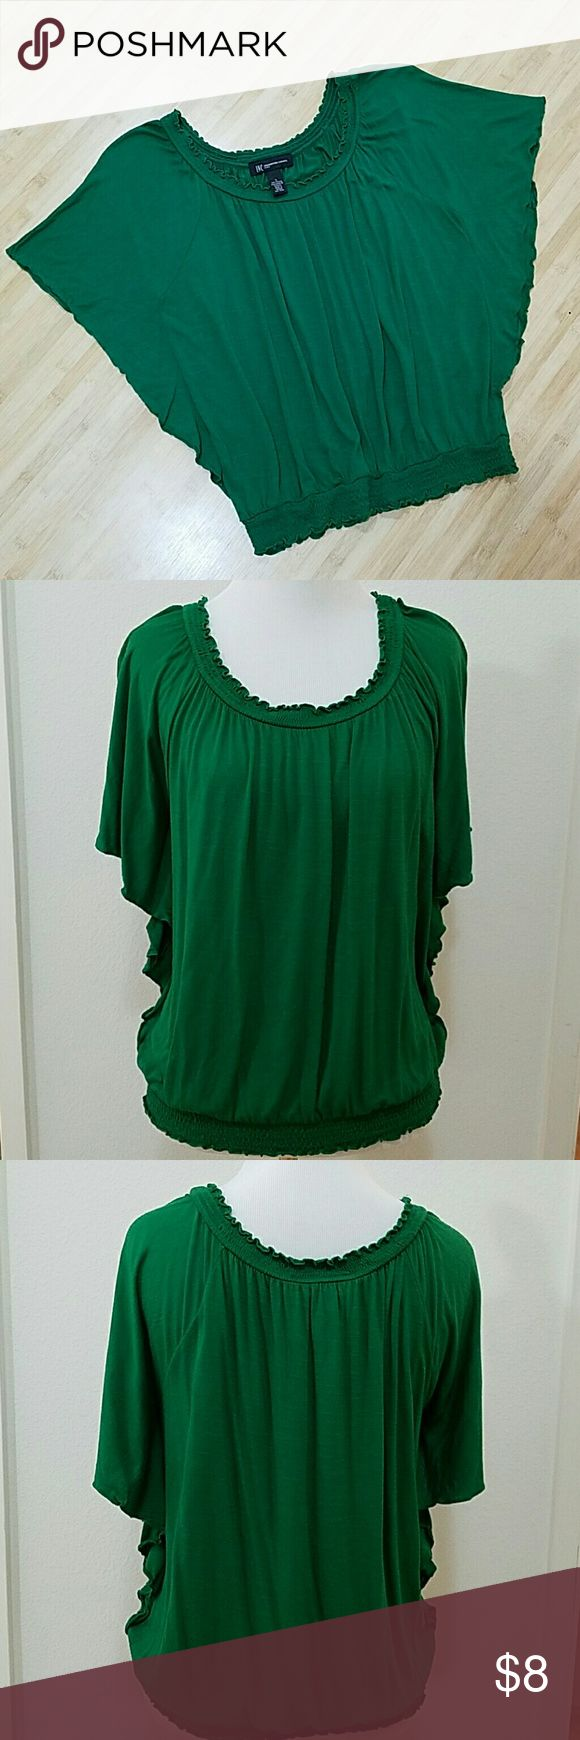 INC International Concepts Green Batwing Top INC International Concepts Top Vibrant Green Elasticized Ruching at hemlines have stretchiness and fit loosely, not binding Flutter batwing type sleeve 100% Rayon Size Petite Small EUC no stains, holes, pilling or other damage INC International Concepts Tops Blouses